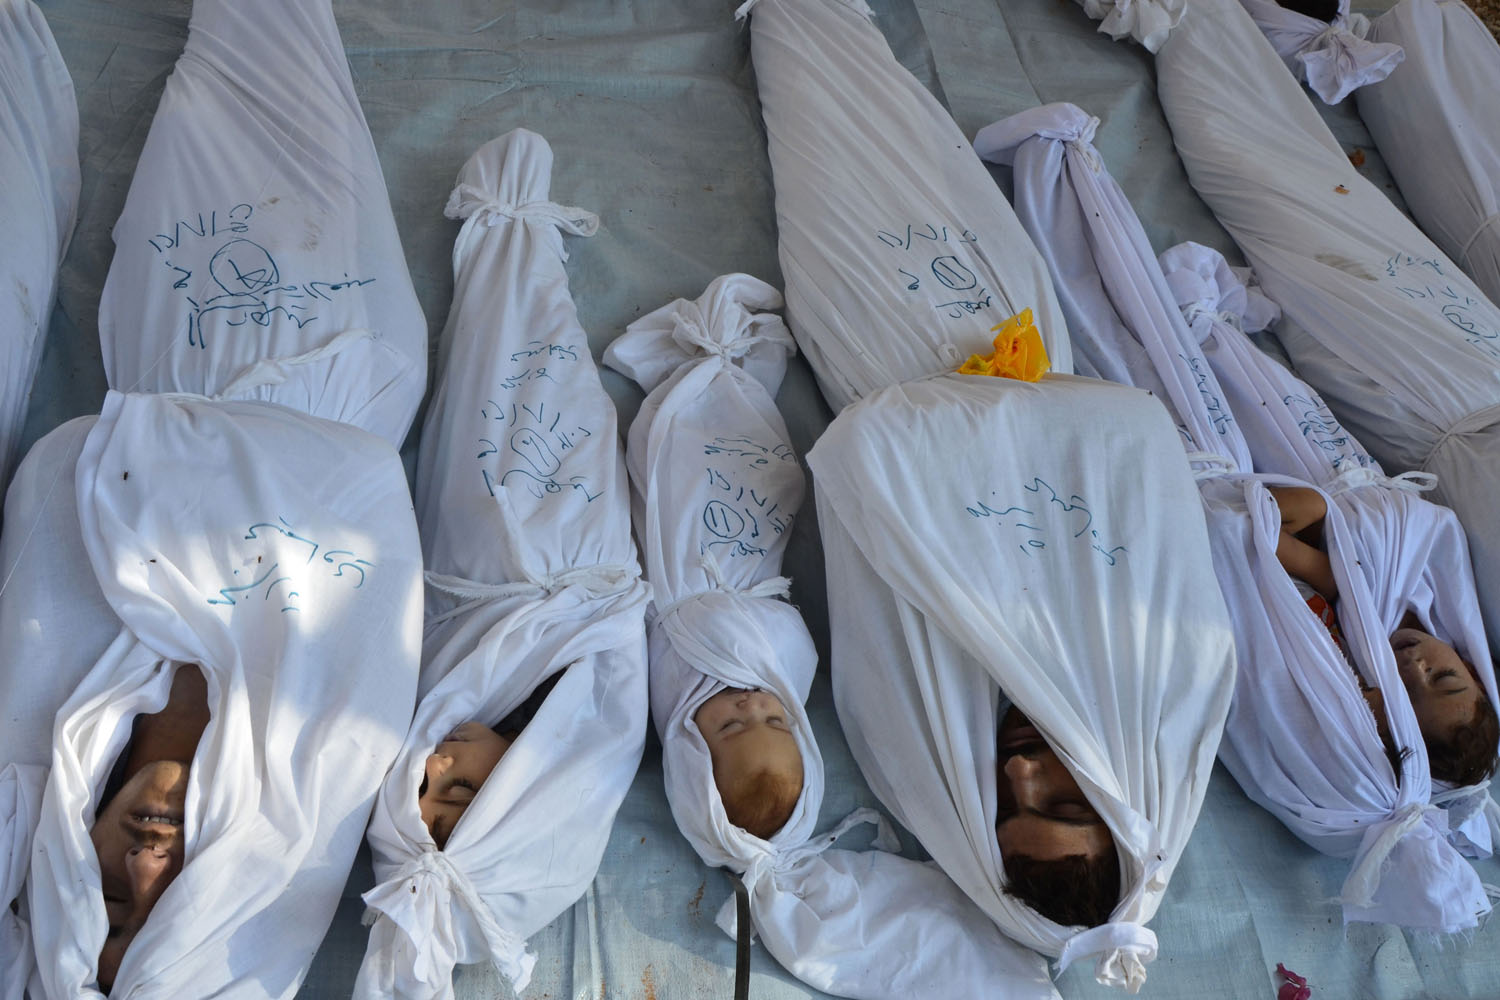 Aug. 21, 2013. Bodies of people activists say were killed by nerve gas in the Ghouta region are seen in the Duma neighbourhood of Damascus, Syria.